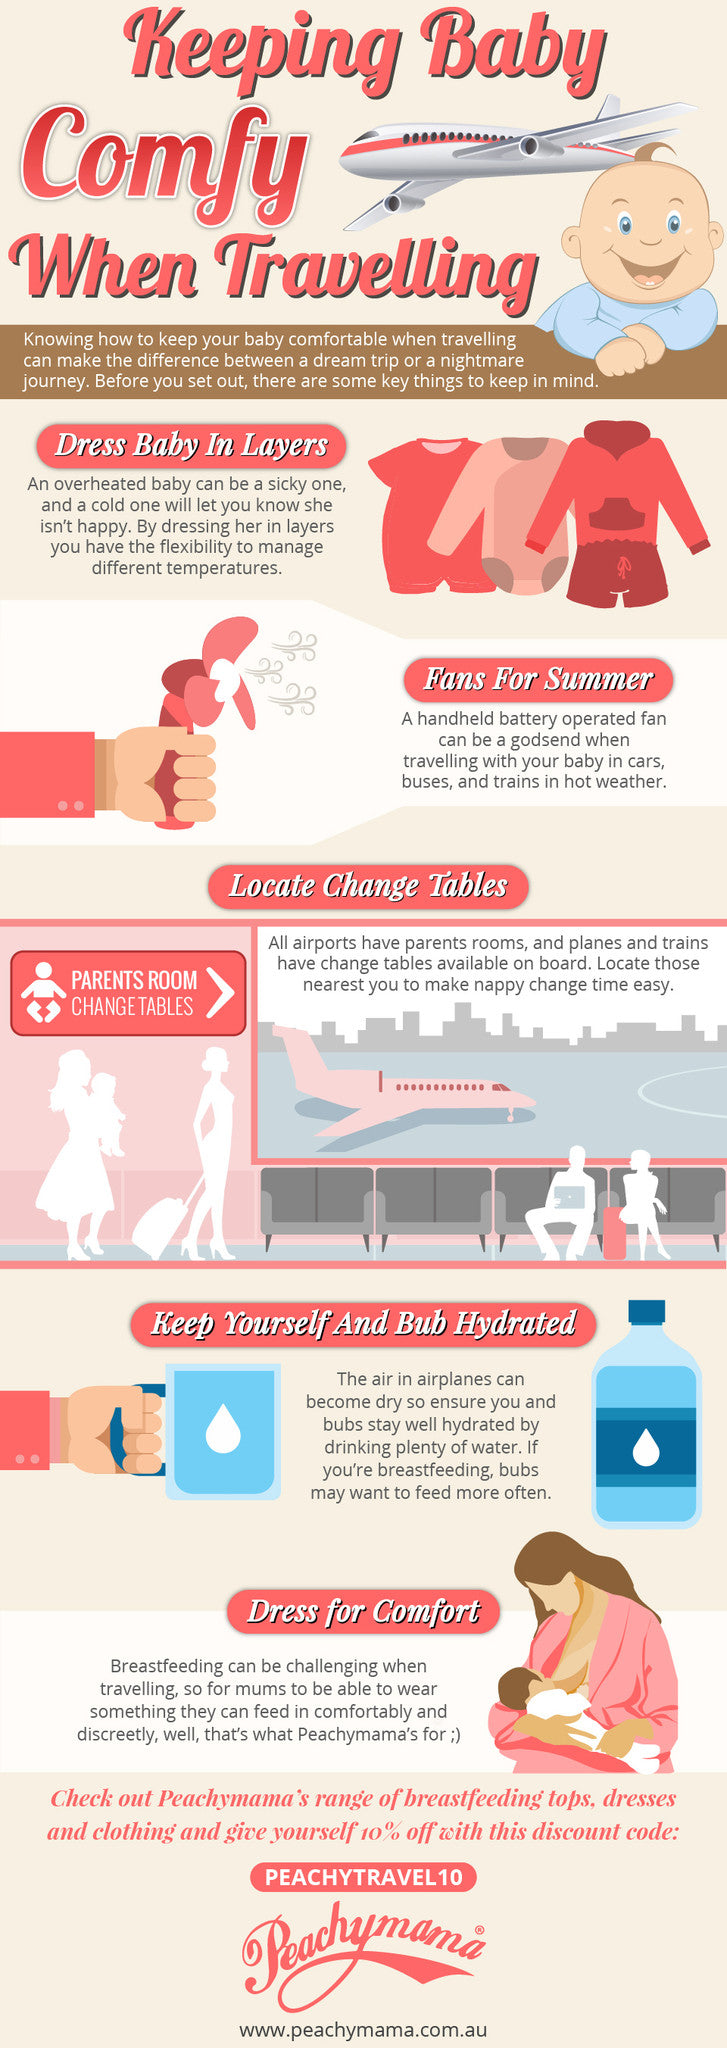 338a5d6f0e79 Keeping Baby Comfy When Traveling (Infographic) - Peachymama